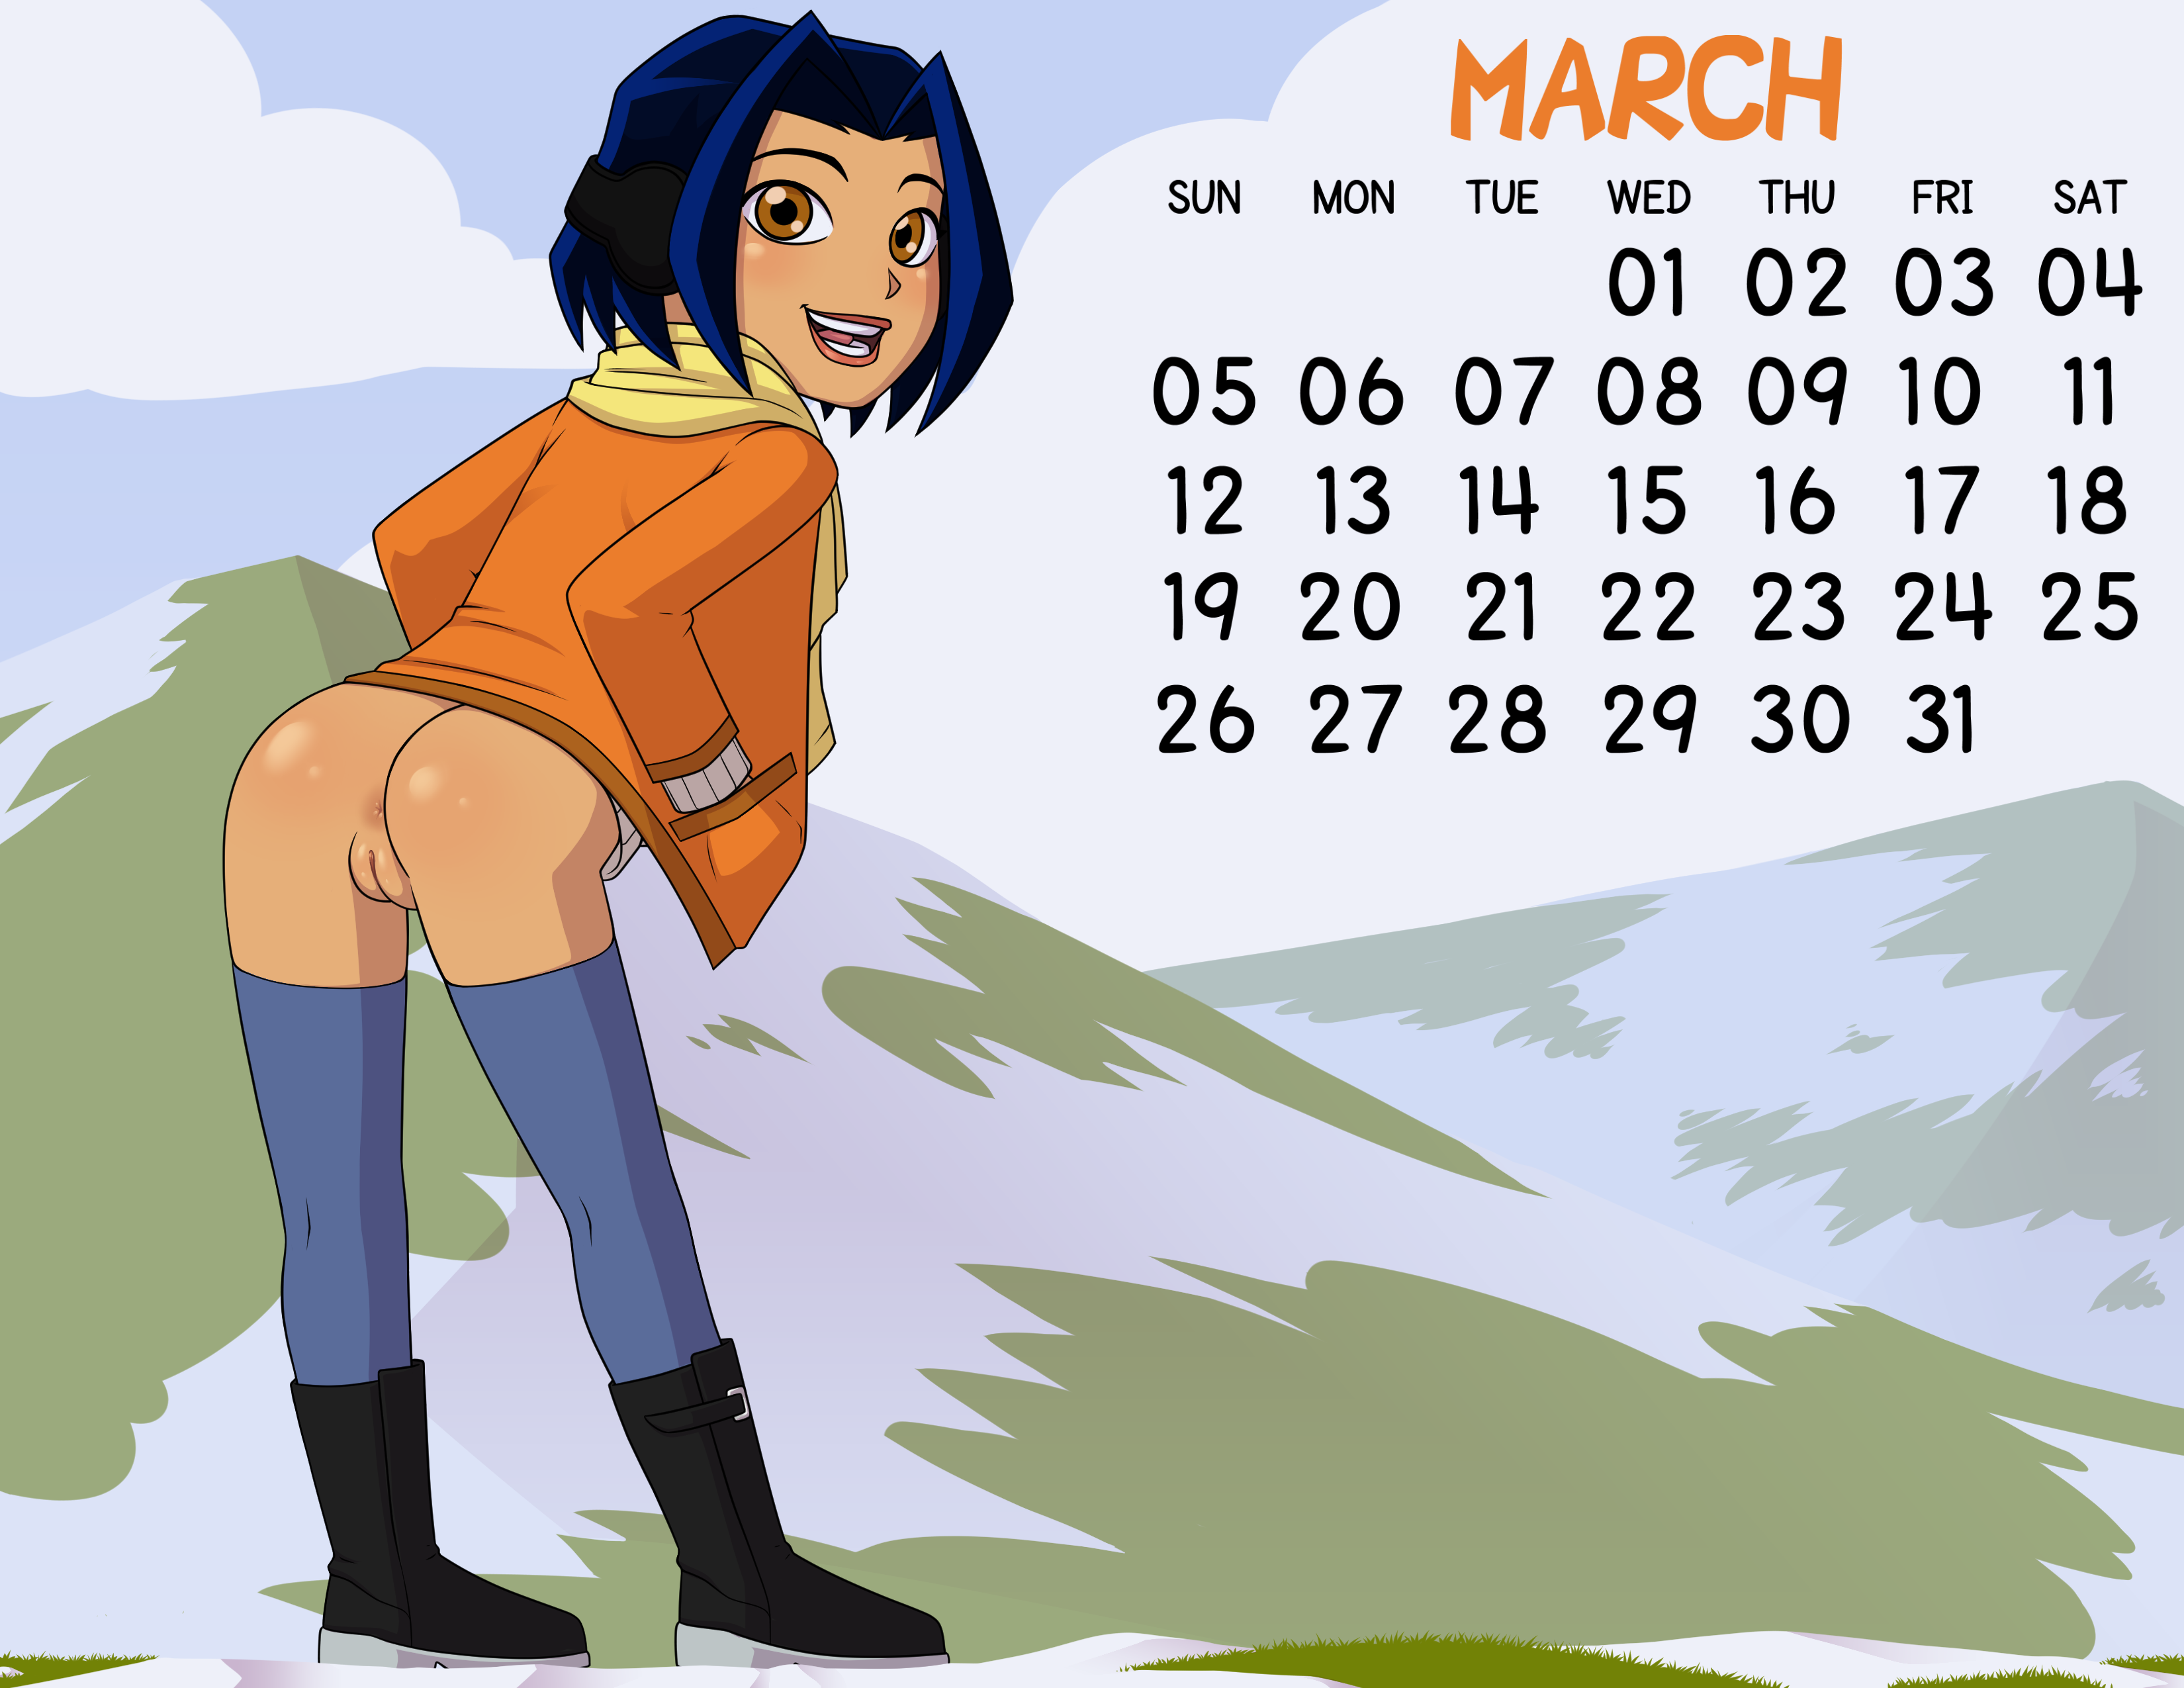 Loli Club Calendar 03 March Jade